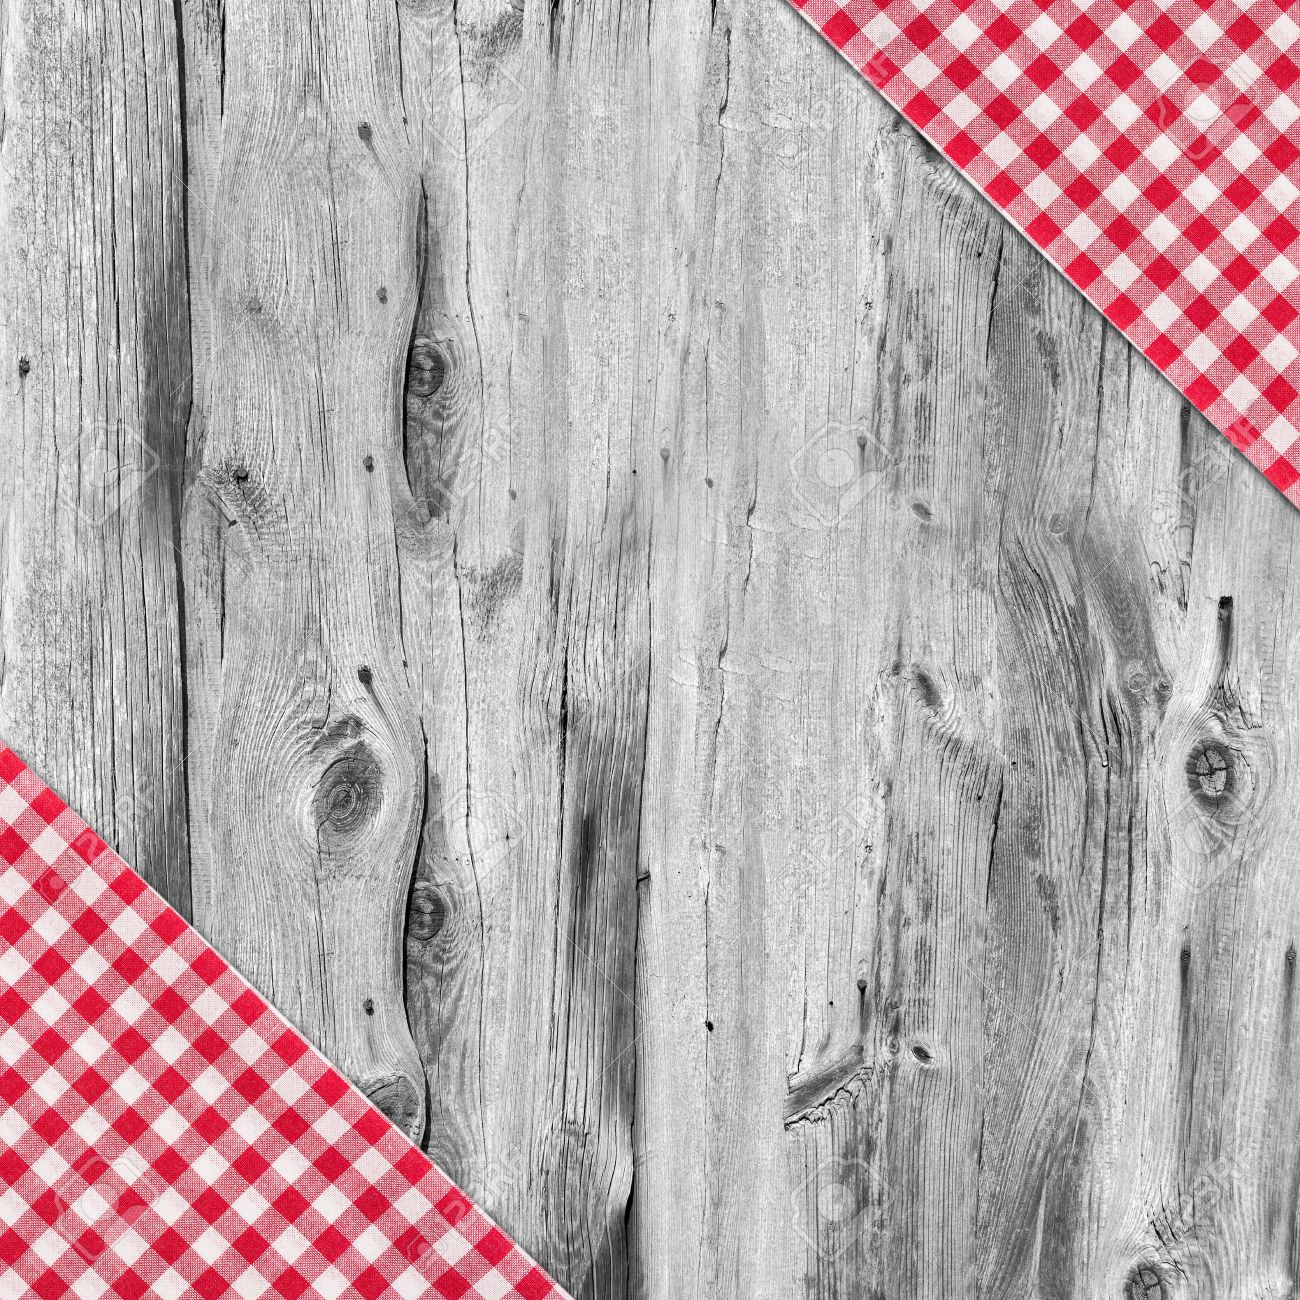 White wooden table texture - White And Red Tablecloth Textile Texture On Wooden Table Background Stock Photo 25199231